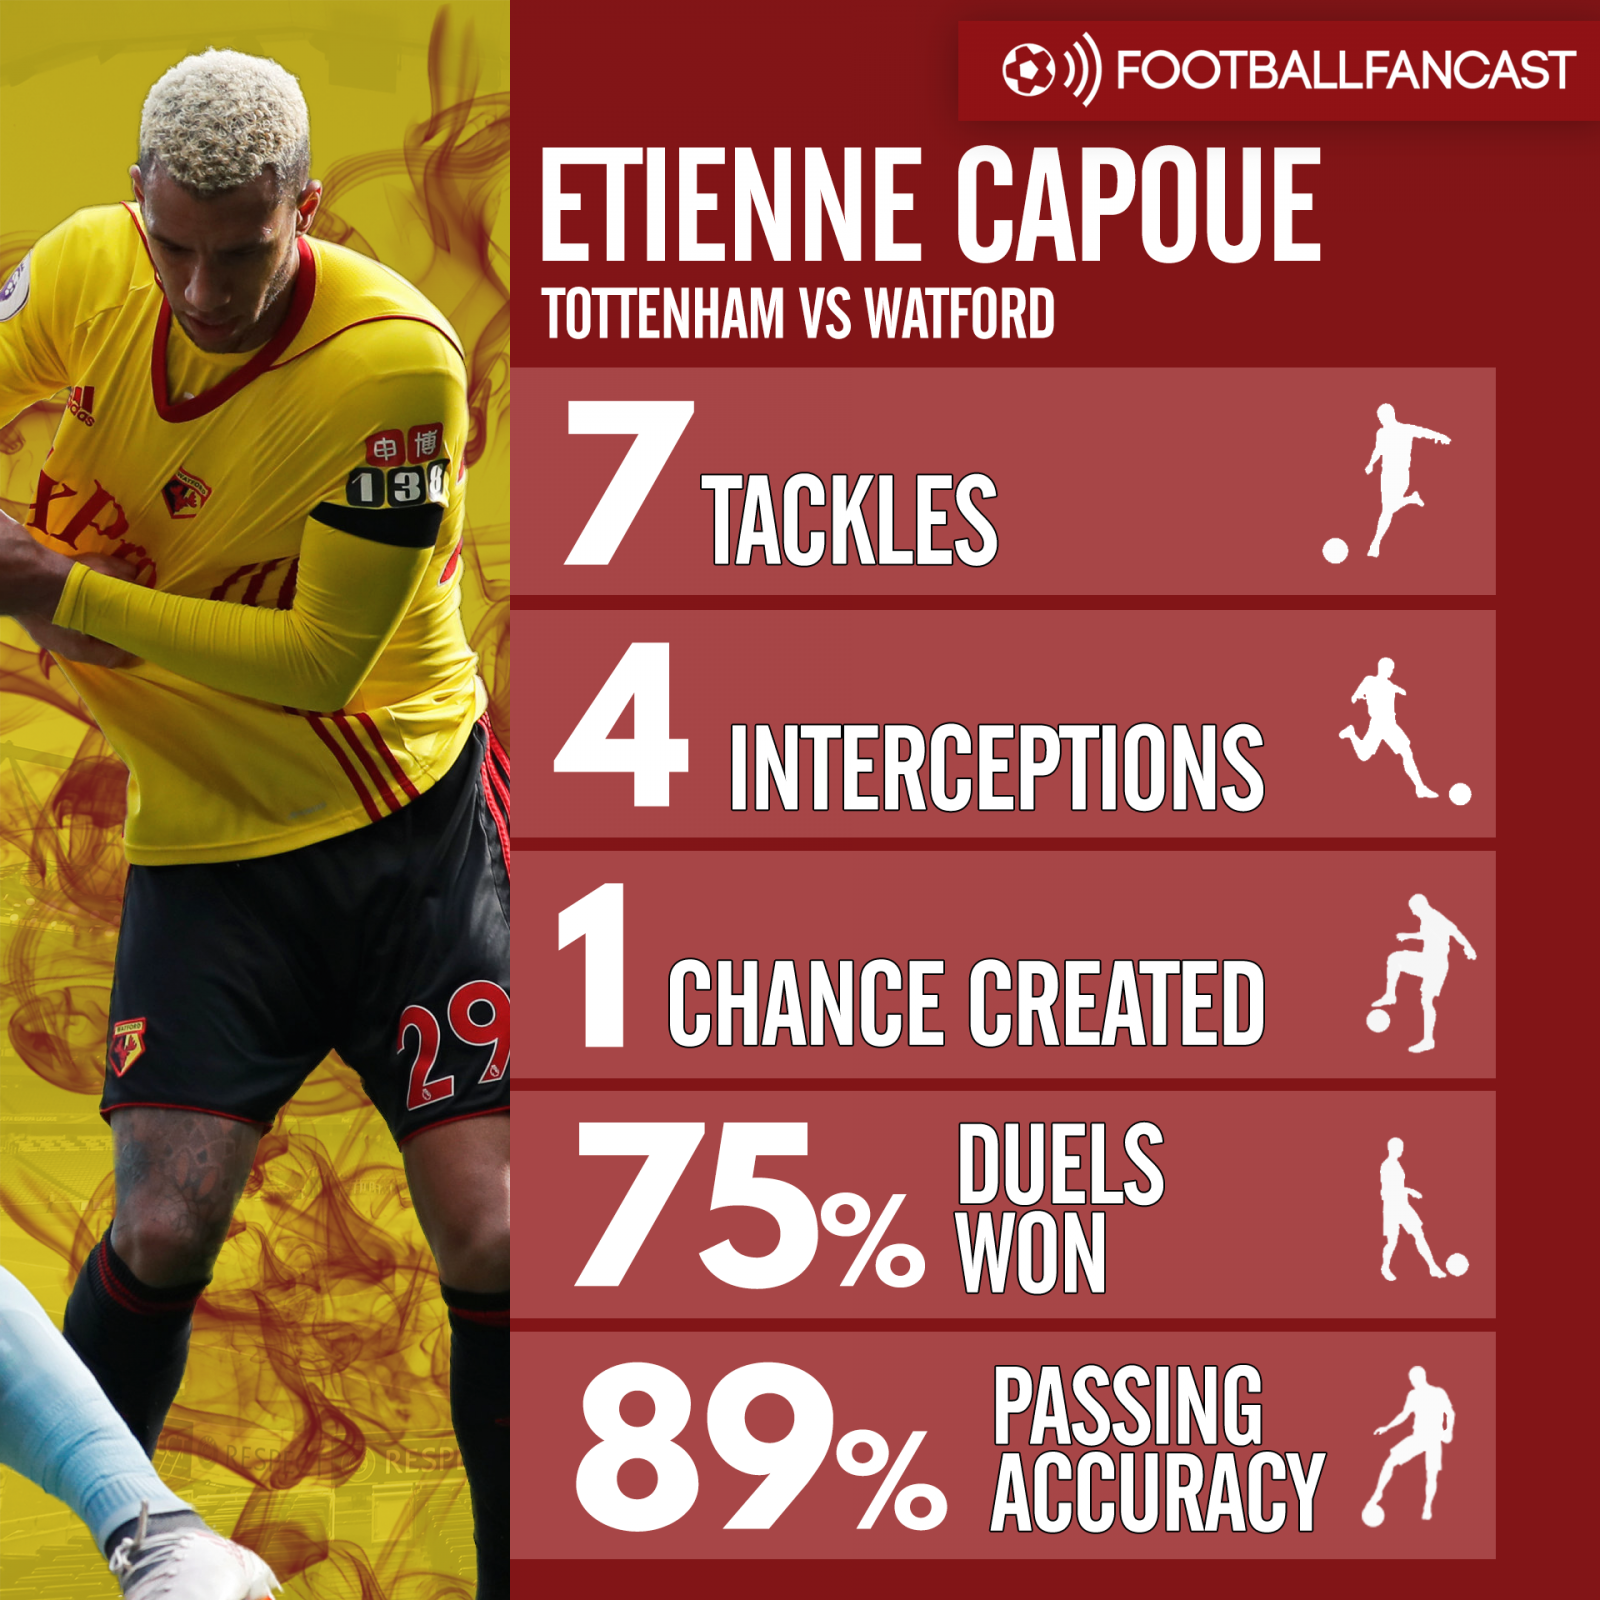 Etienne Capoue's stats from Watford's defeat to Tottenham